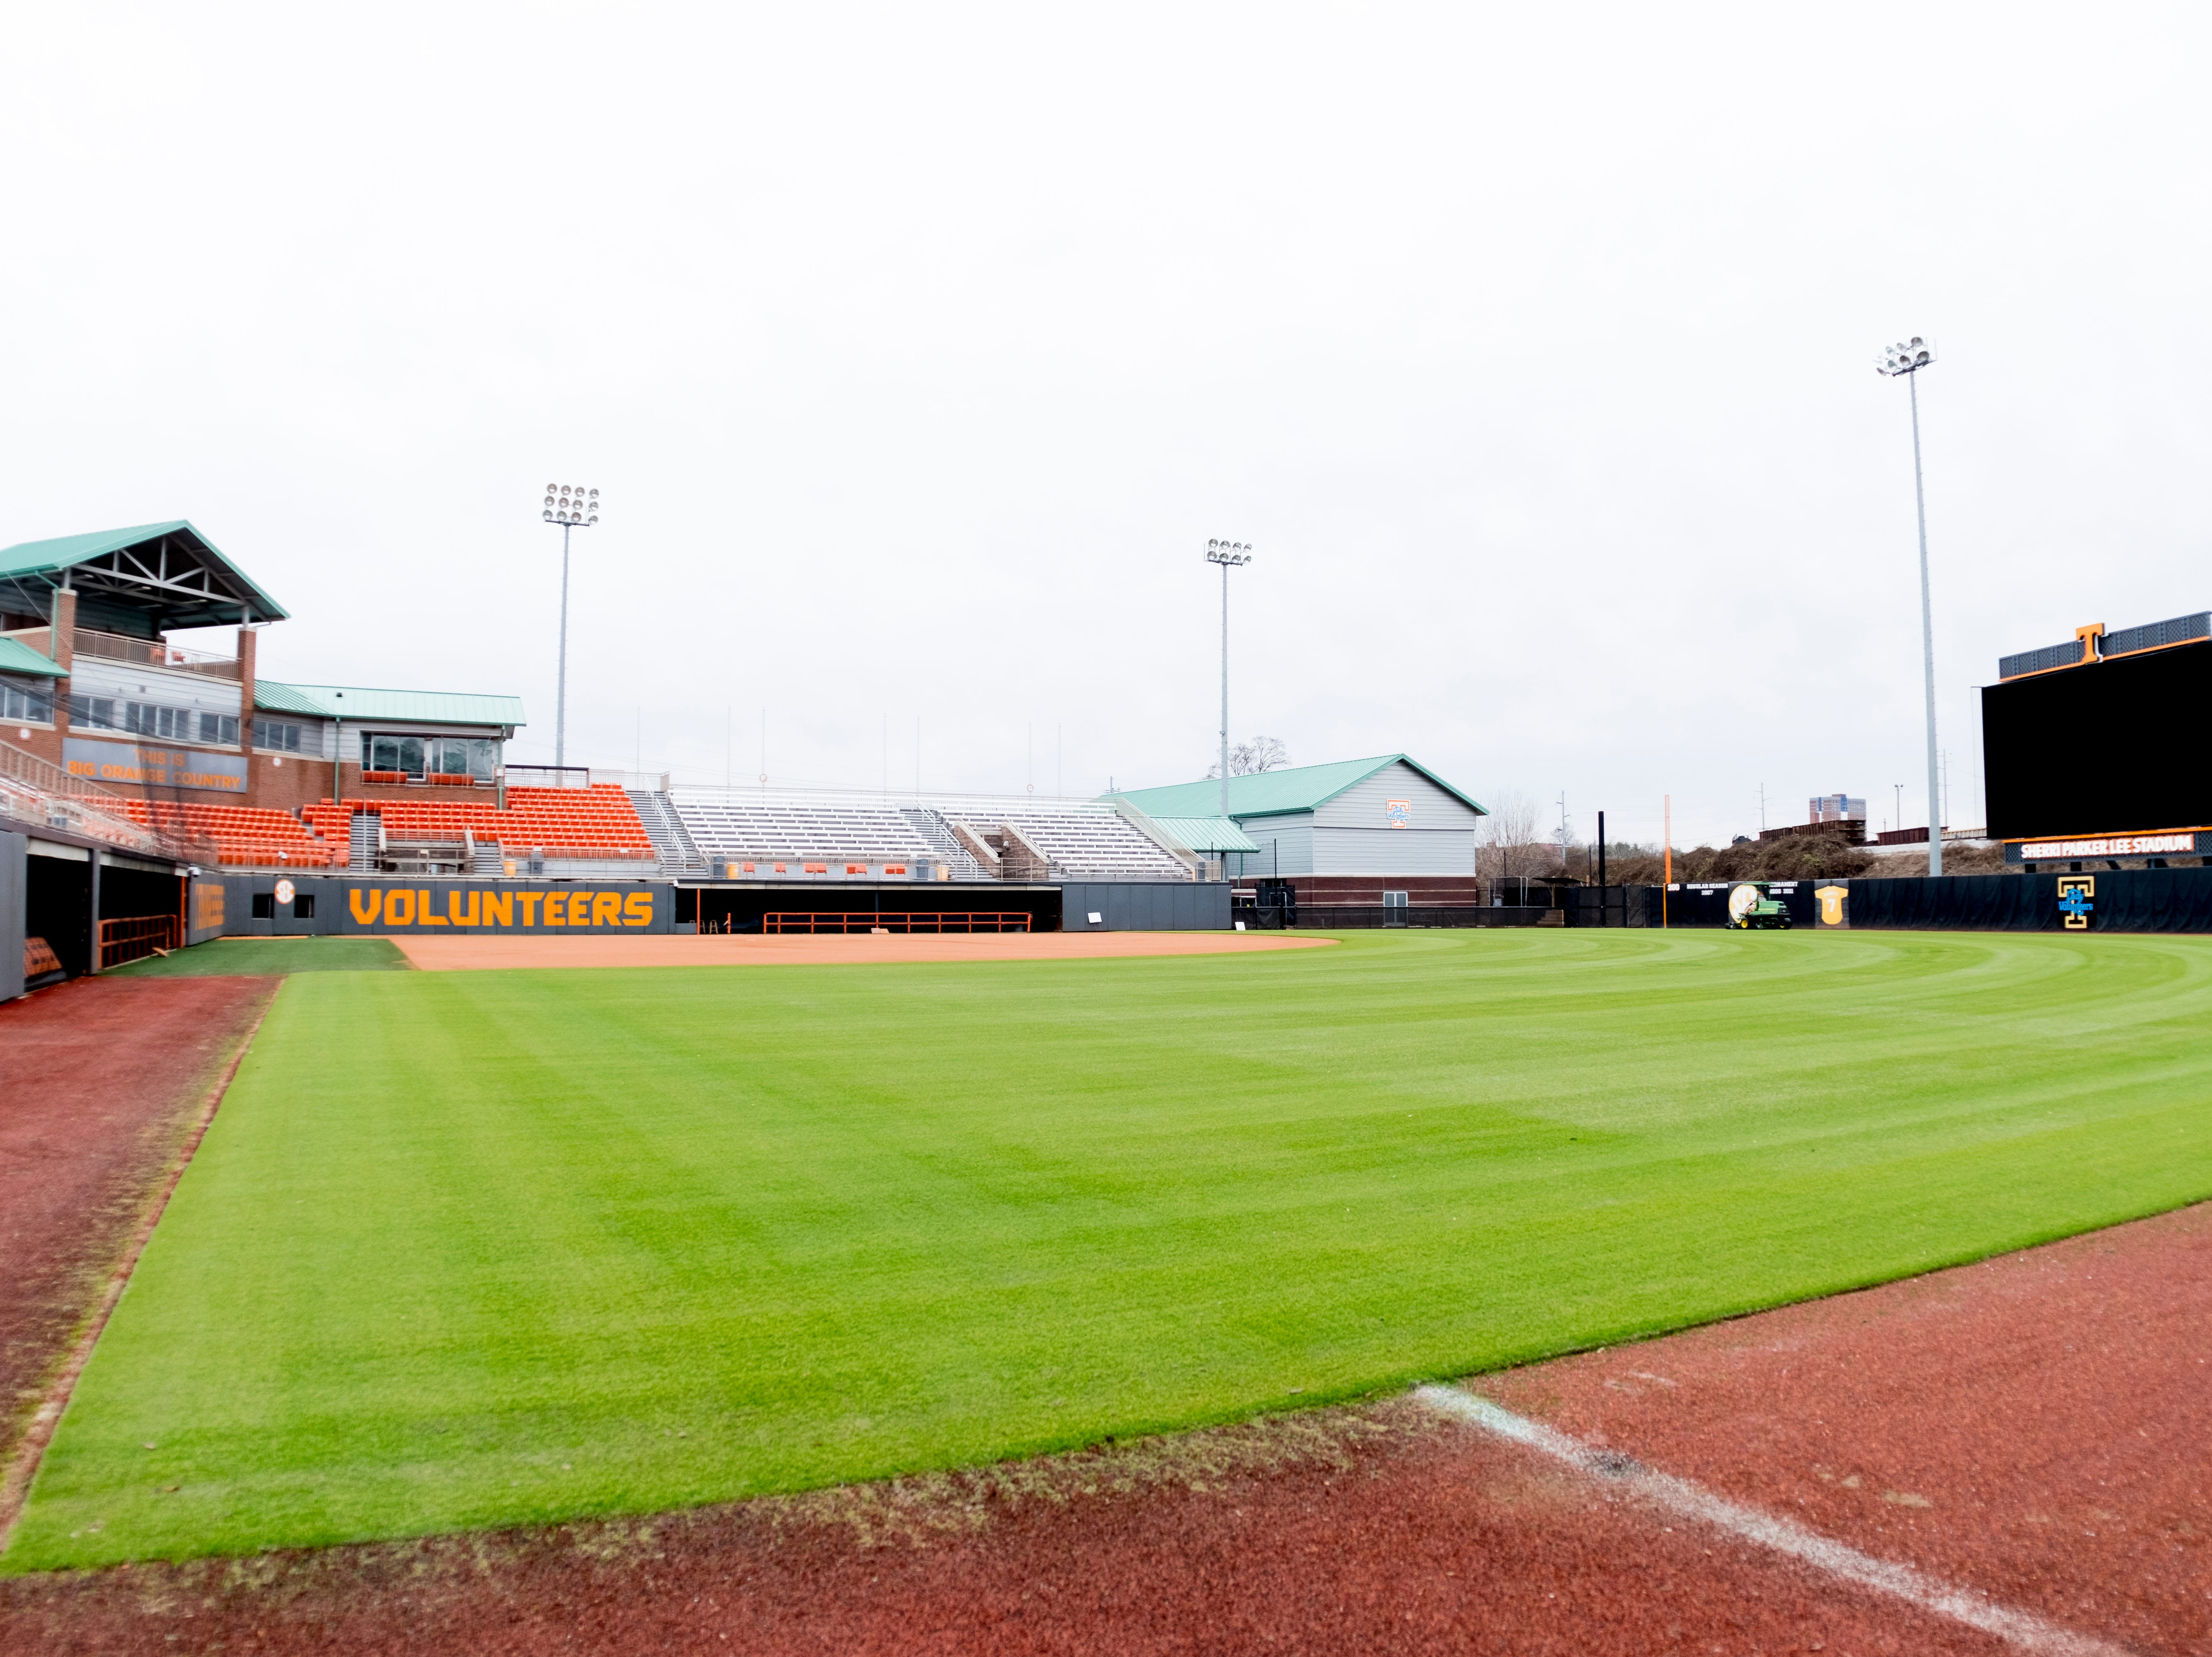 Sherri Parker Lee Stadium on the University of Tennessee campus in Knoxville, Tennessee on Wednesday, January 2, 2019.